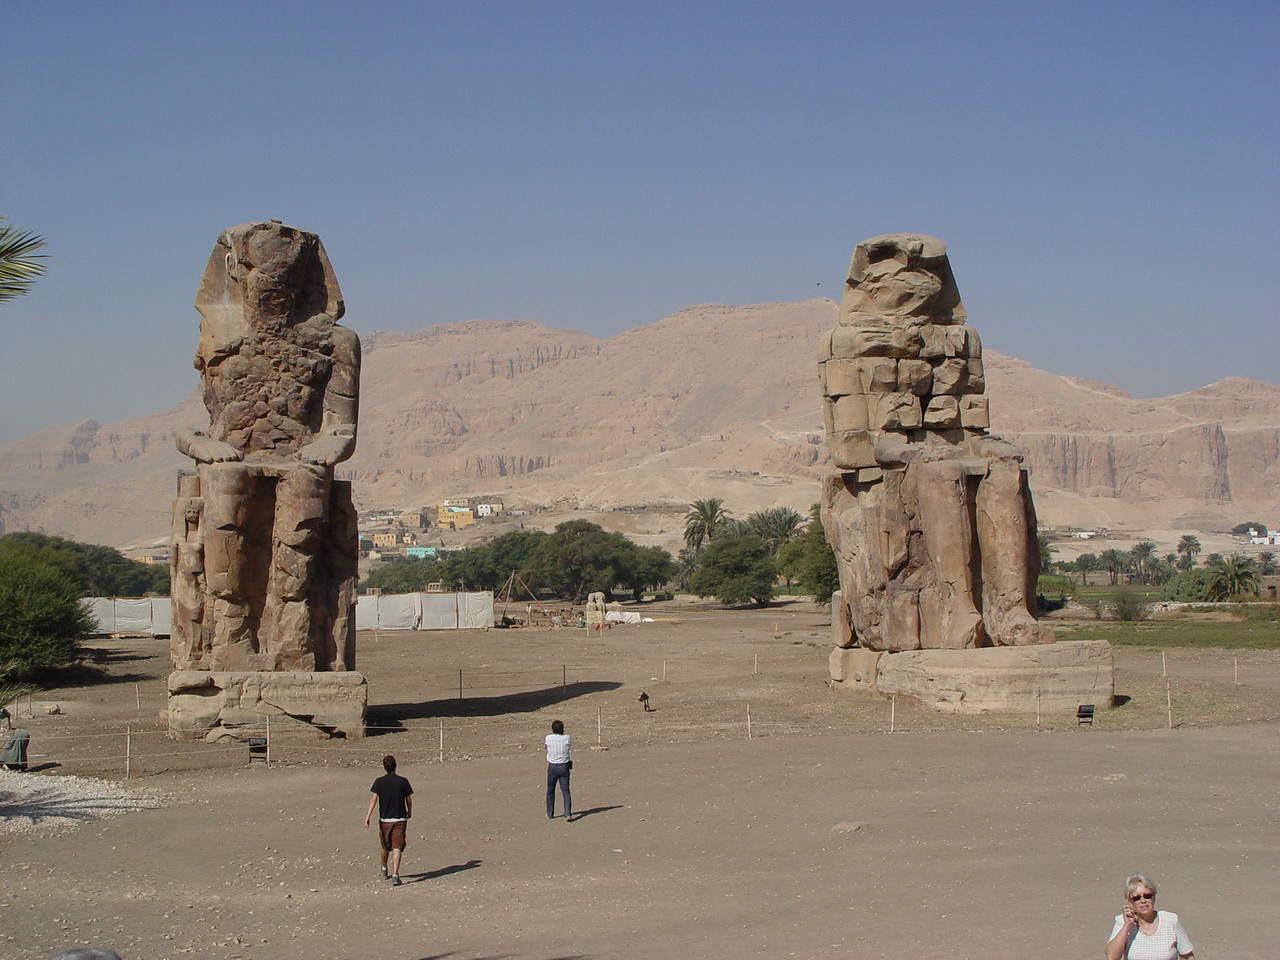 h) We ride pass the Colossi of Memnon. They were guards to a mortuary temple built by Amenhotep III (18th dynasty). The temple is gone but the guards remain. Due to an earthquake in 27 BC, a bell- tone would emanate from the statues which usually occurred in the morning due to rising temperatures and humidity. Early Greek travelers associated these with the figure of Memnon, the son of Aurora who's mother, Eos, was the goddess of dawn. To hear the sounds meant that you were favored by the gods. Visitors from miles, including Emperor Hadrian, in 130 A.D. came to hear these sounds.  The Roman emperor Septimius Severus in 199 AD tried to repair the statues and inadvertently silenced them forever.